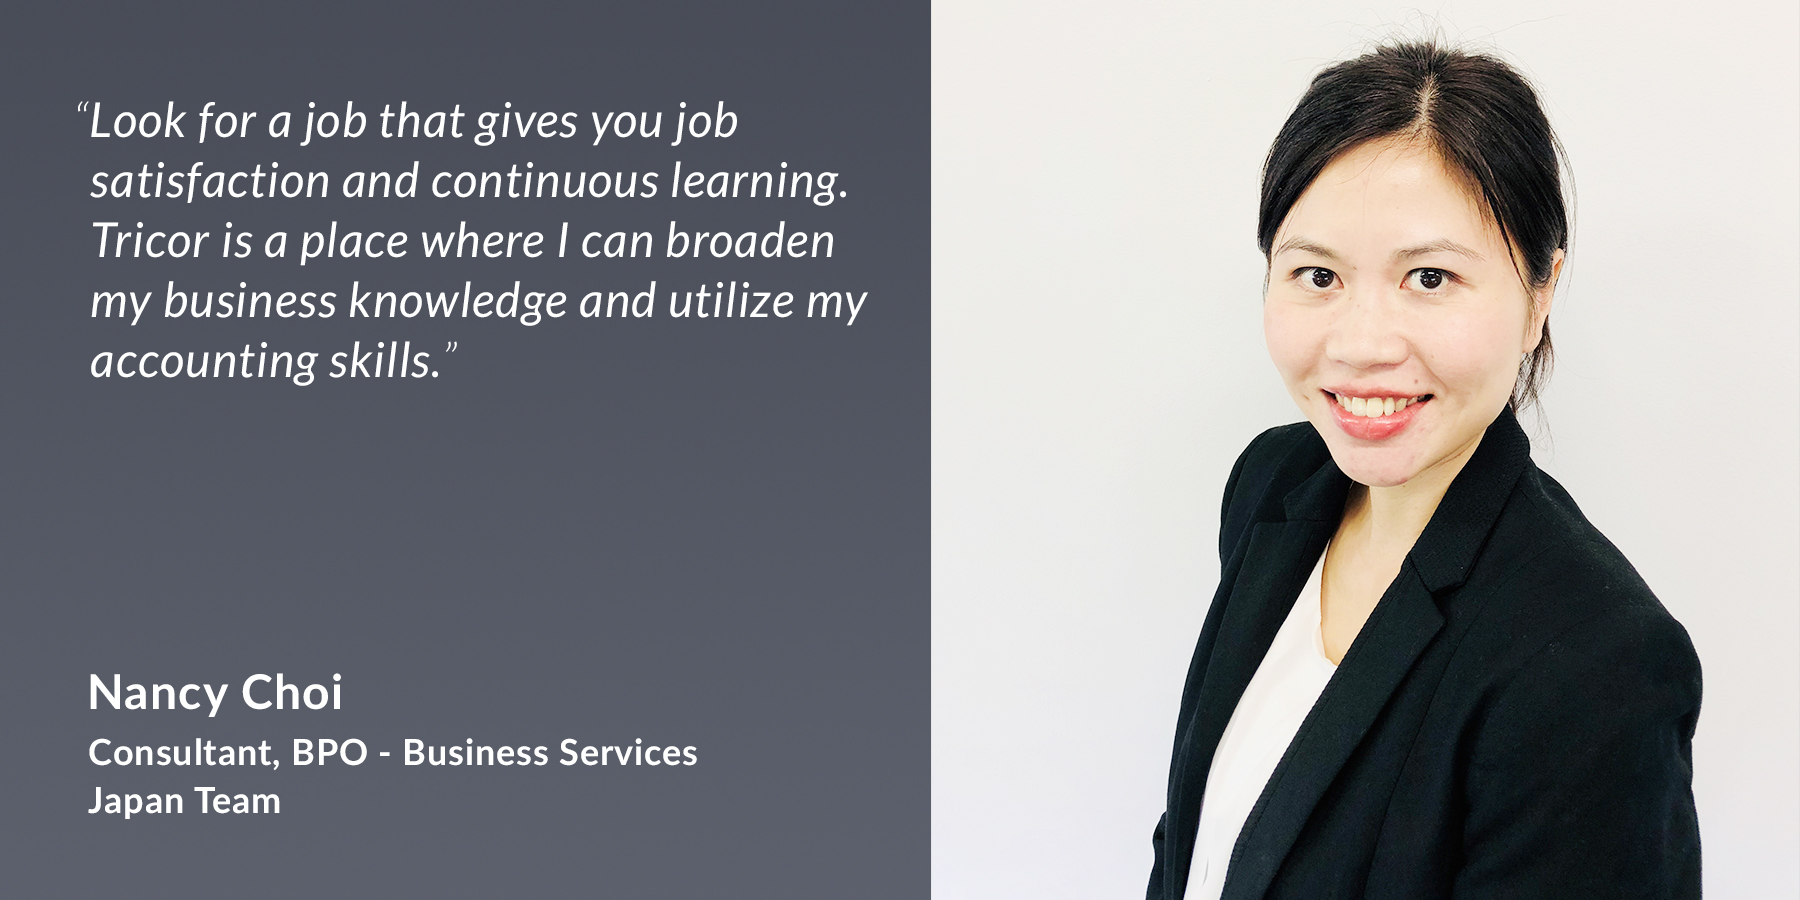 Nancy Choi – Consultant, BPO – Business Services Japan Team